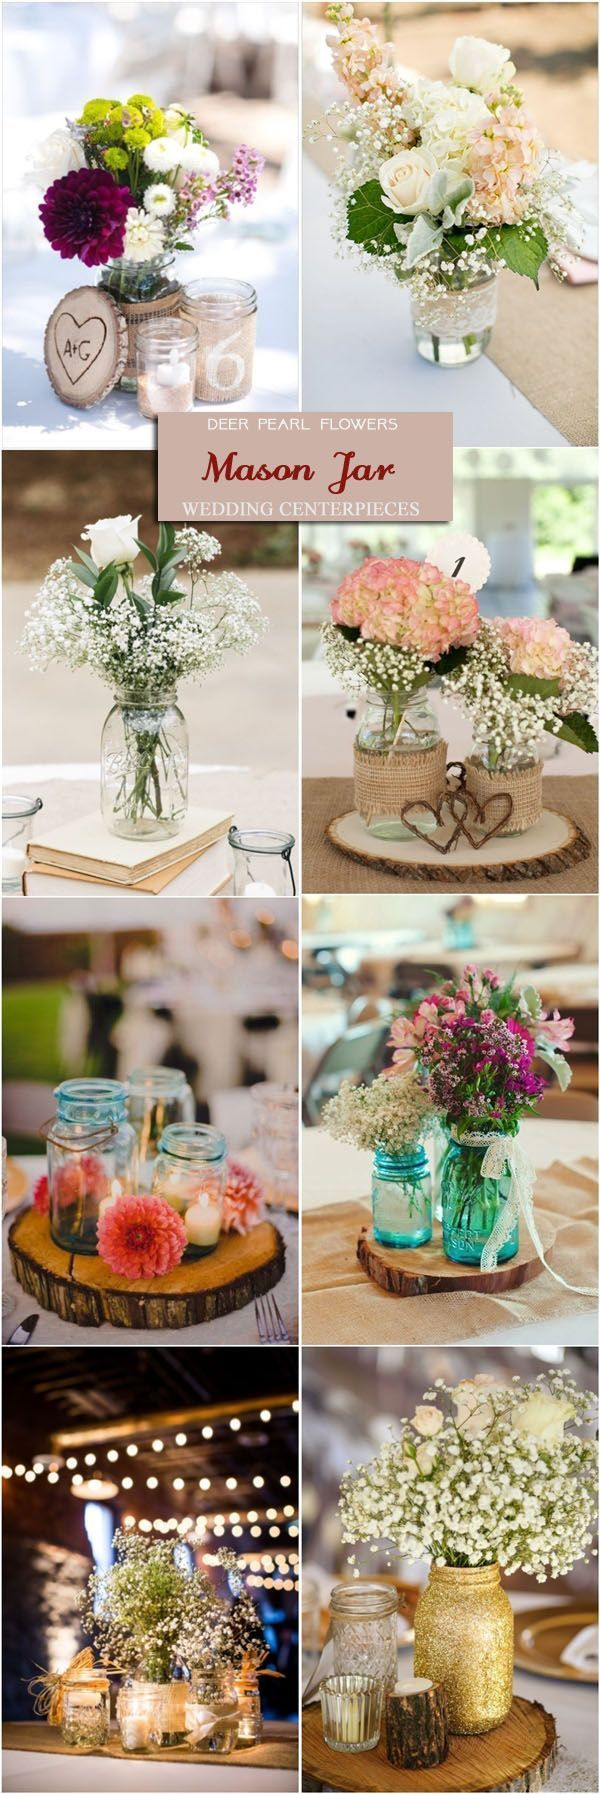 Mason jar wedding decoration ideas  Rustic mason jar wedding centerpieces  erpearlflowers